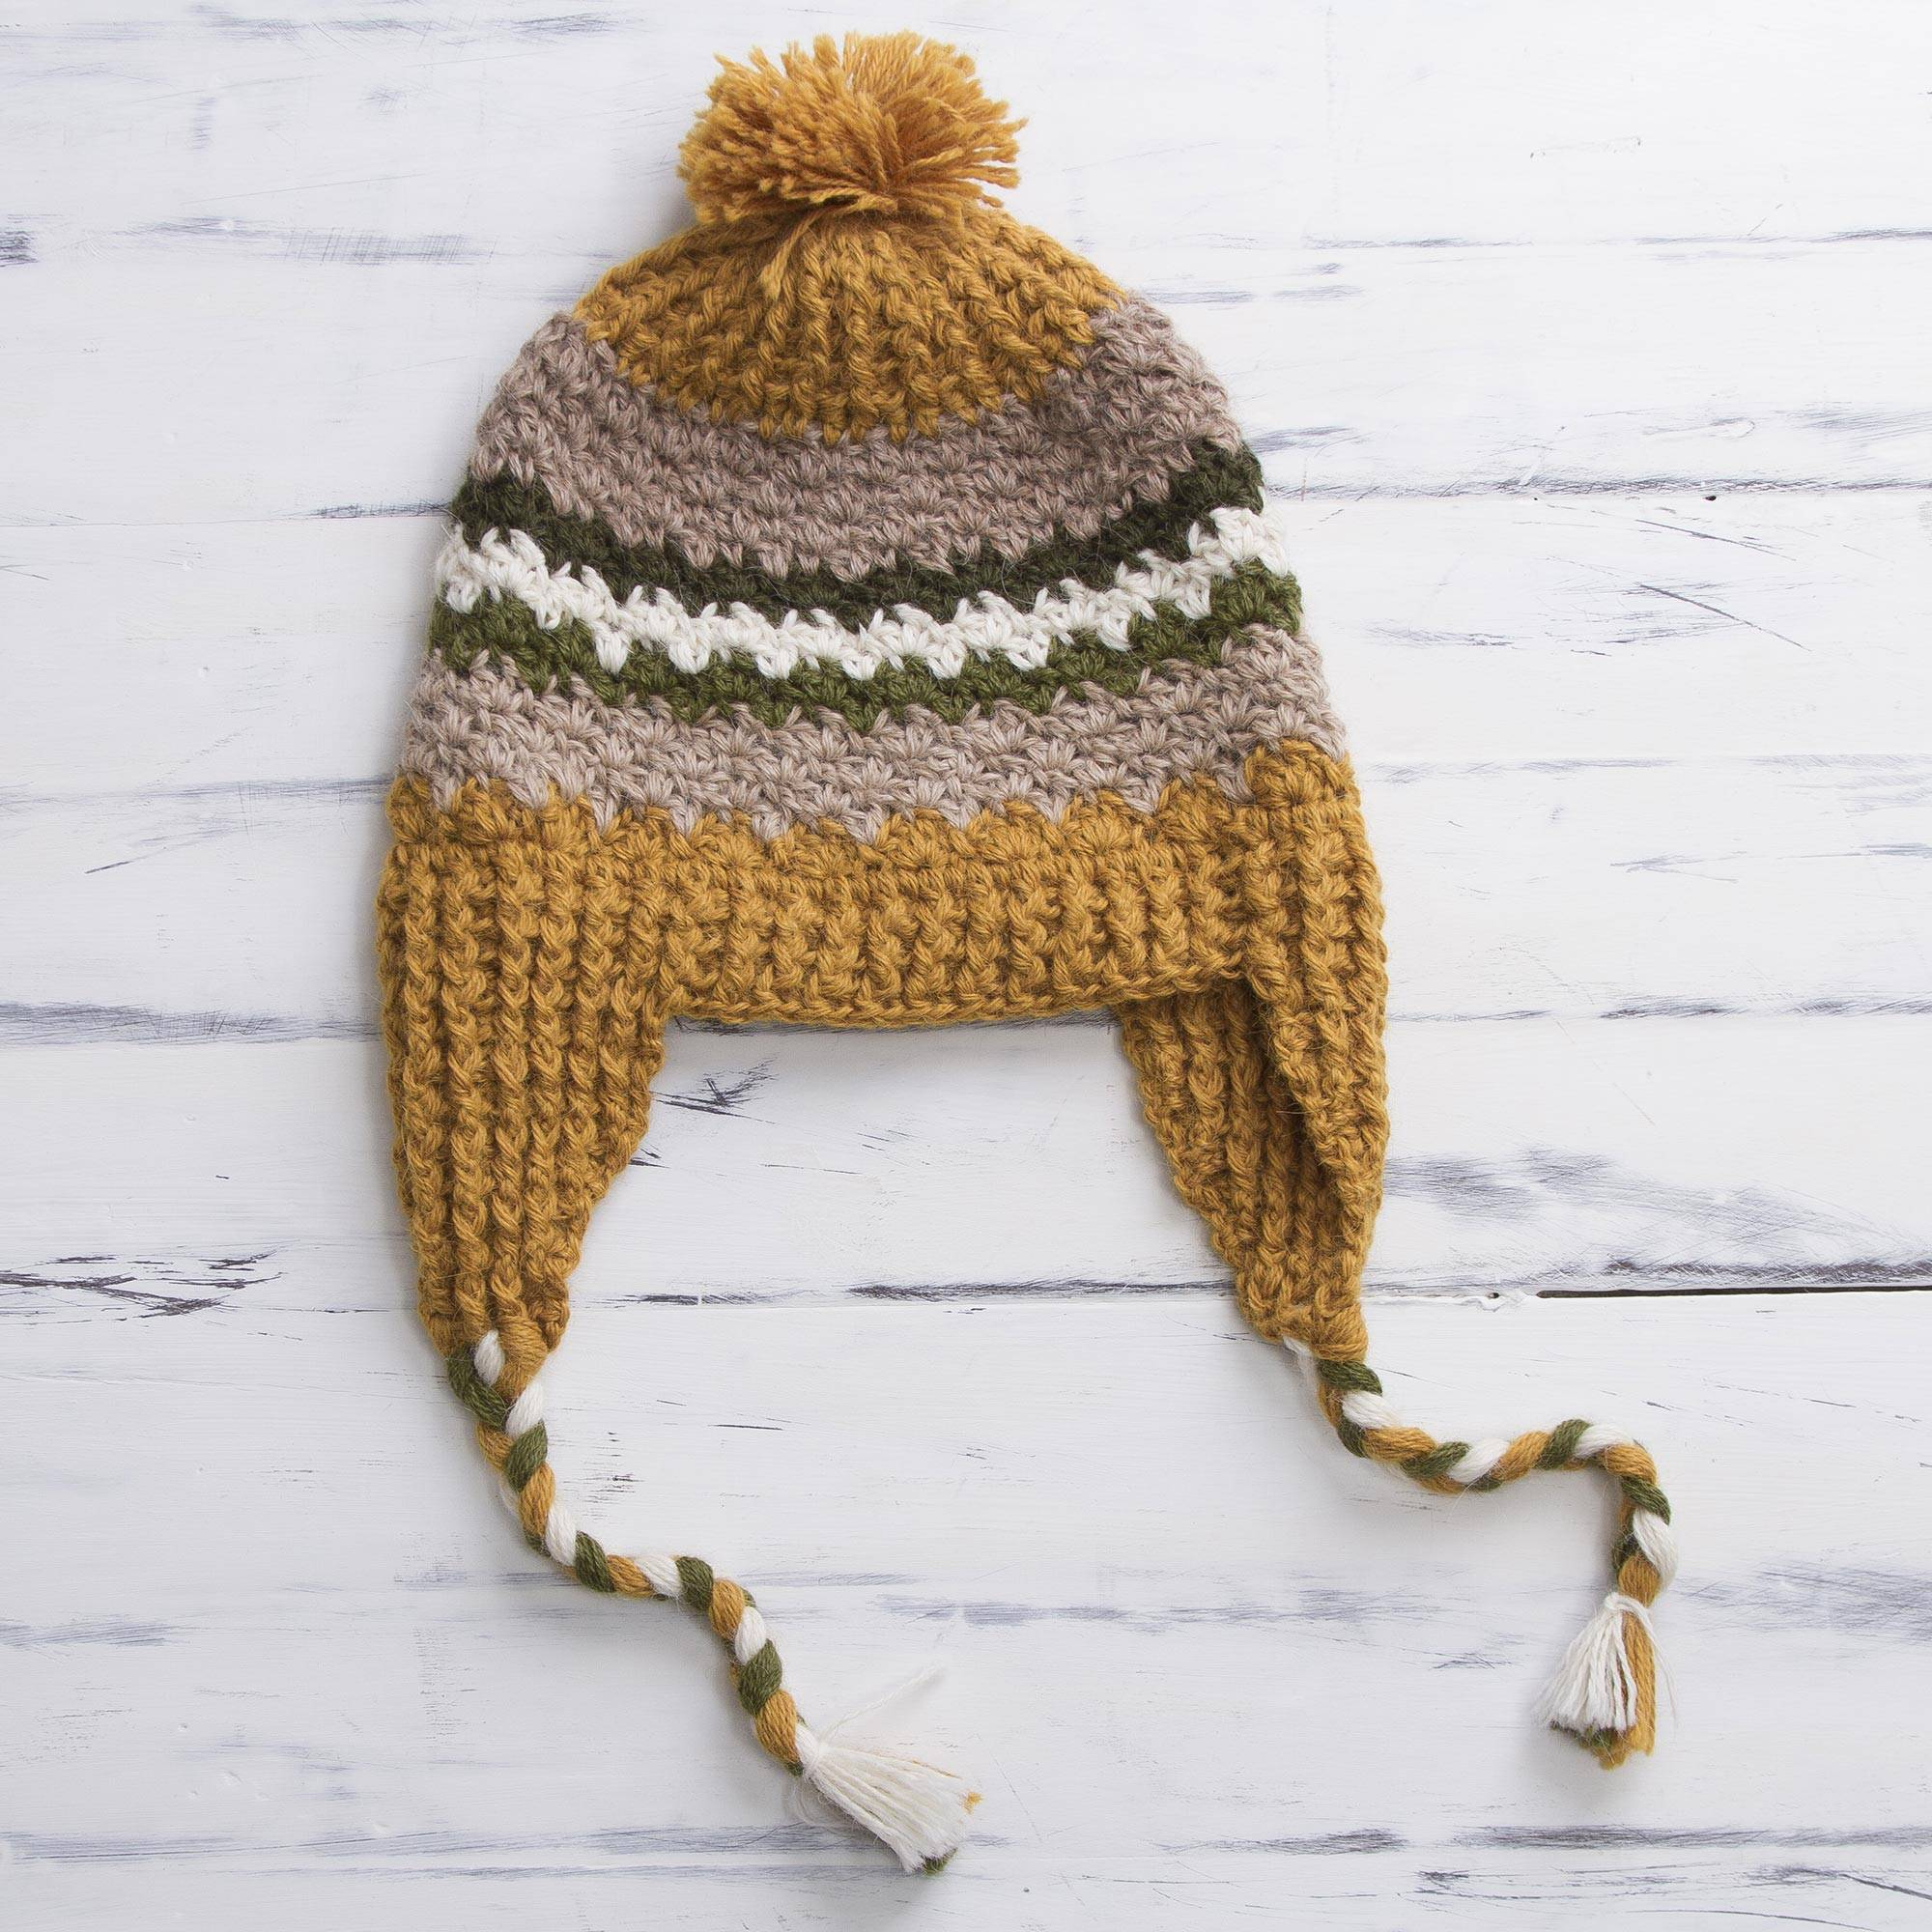 be1b04816 Hand Knit Alpaca Patterned Chullo Hat with Earflaps, 'Andes Charisma'